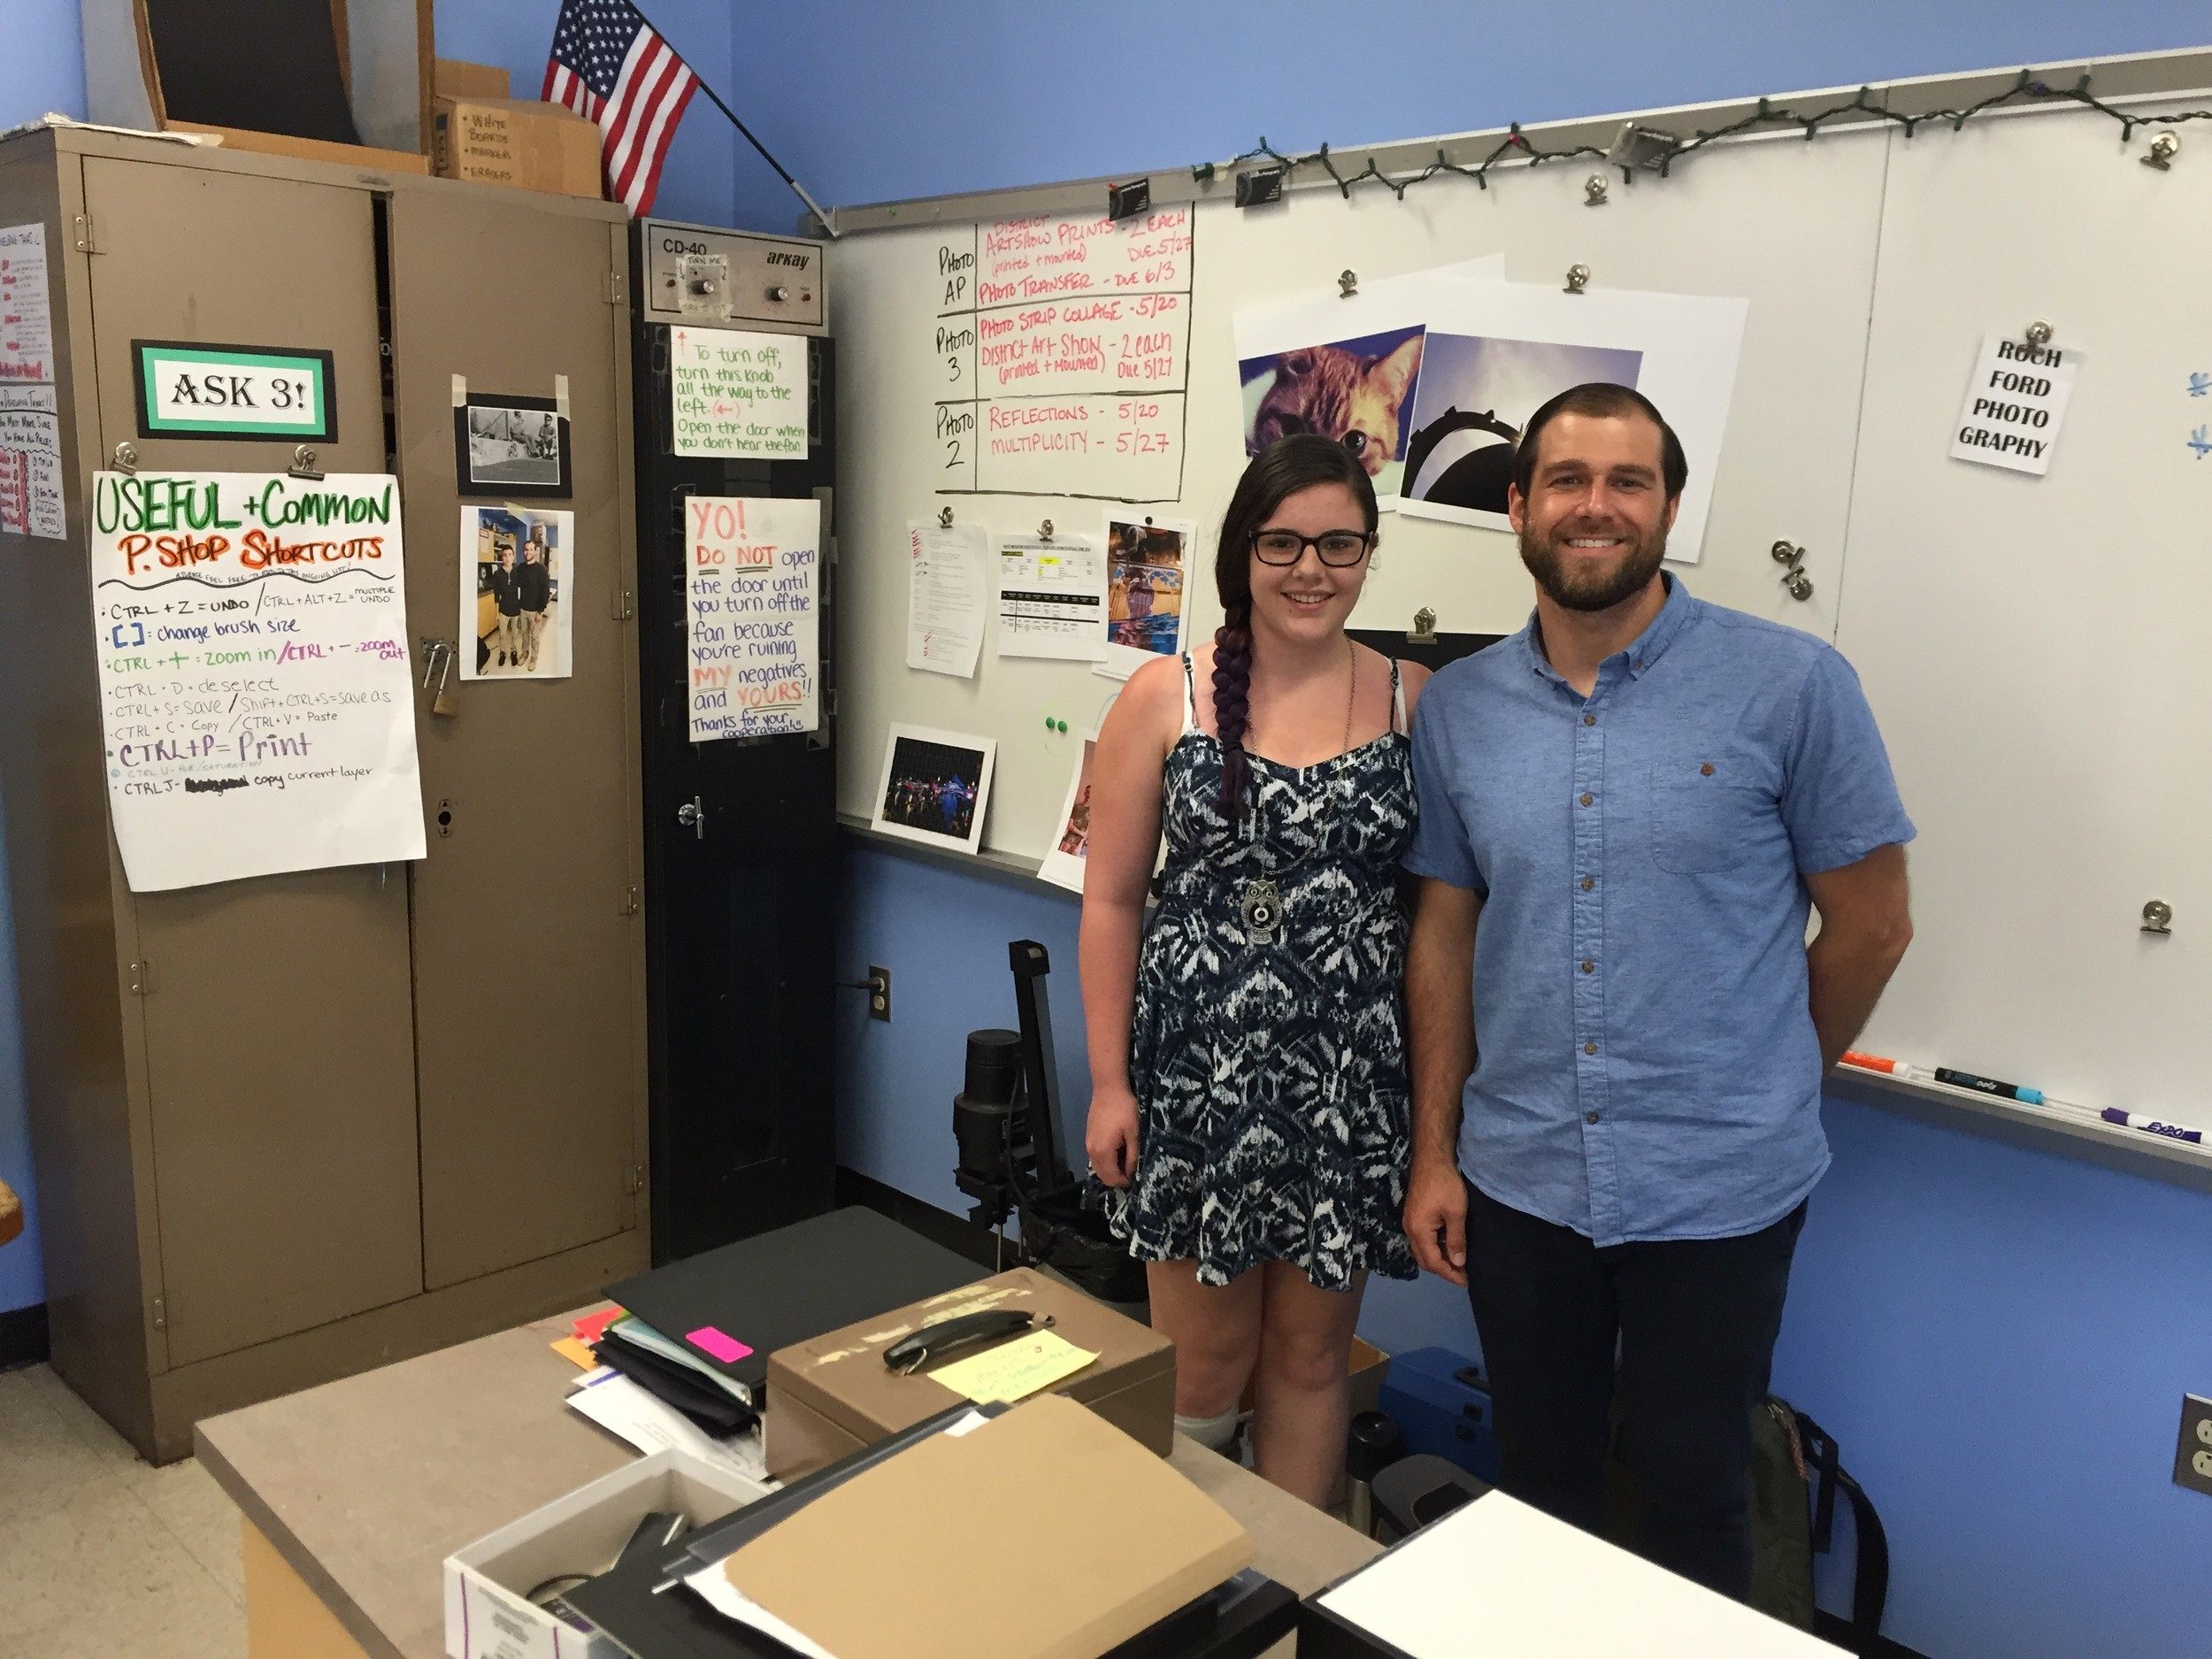 Ryan Rochford, Caitlyn Herlihy's photography teacher at EMHS, praised her work ethic